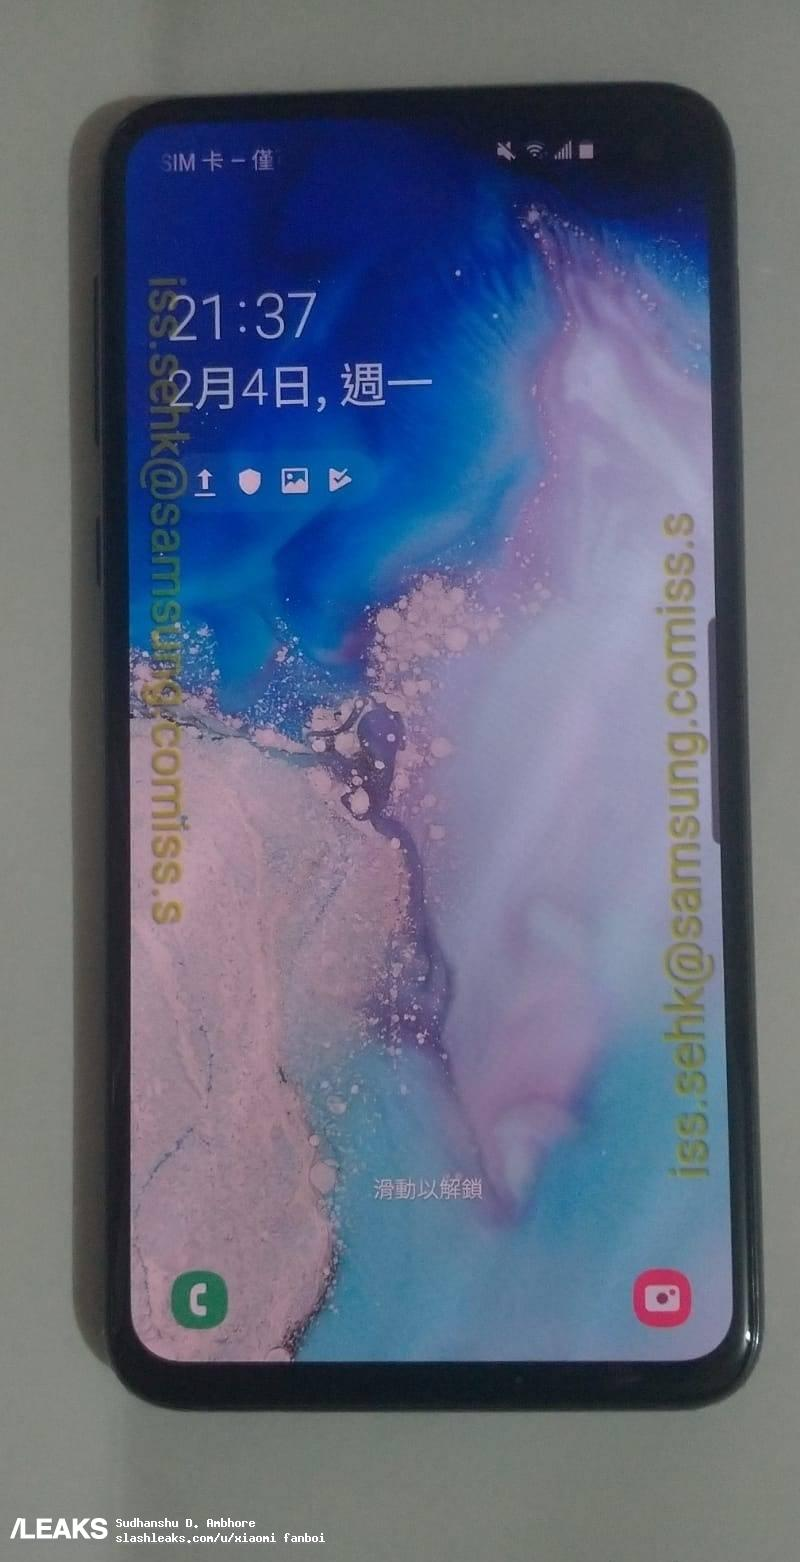 Here are the live images of the Samsung Galaxy S10e 2